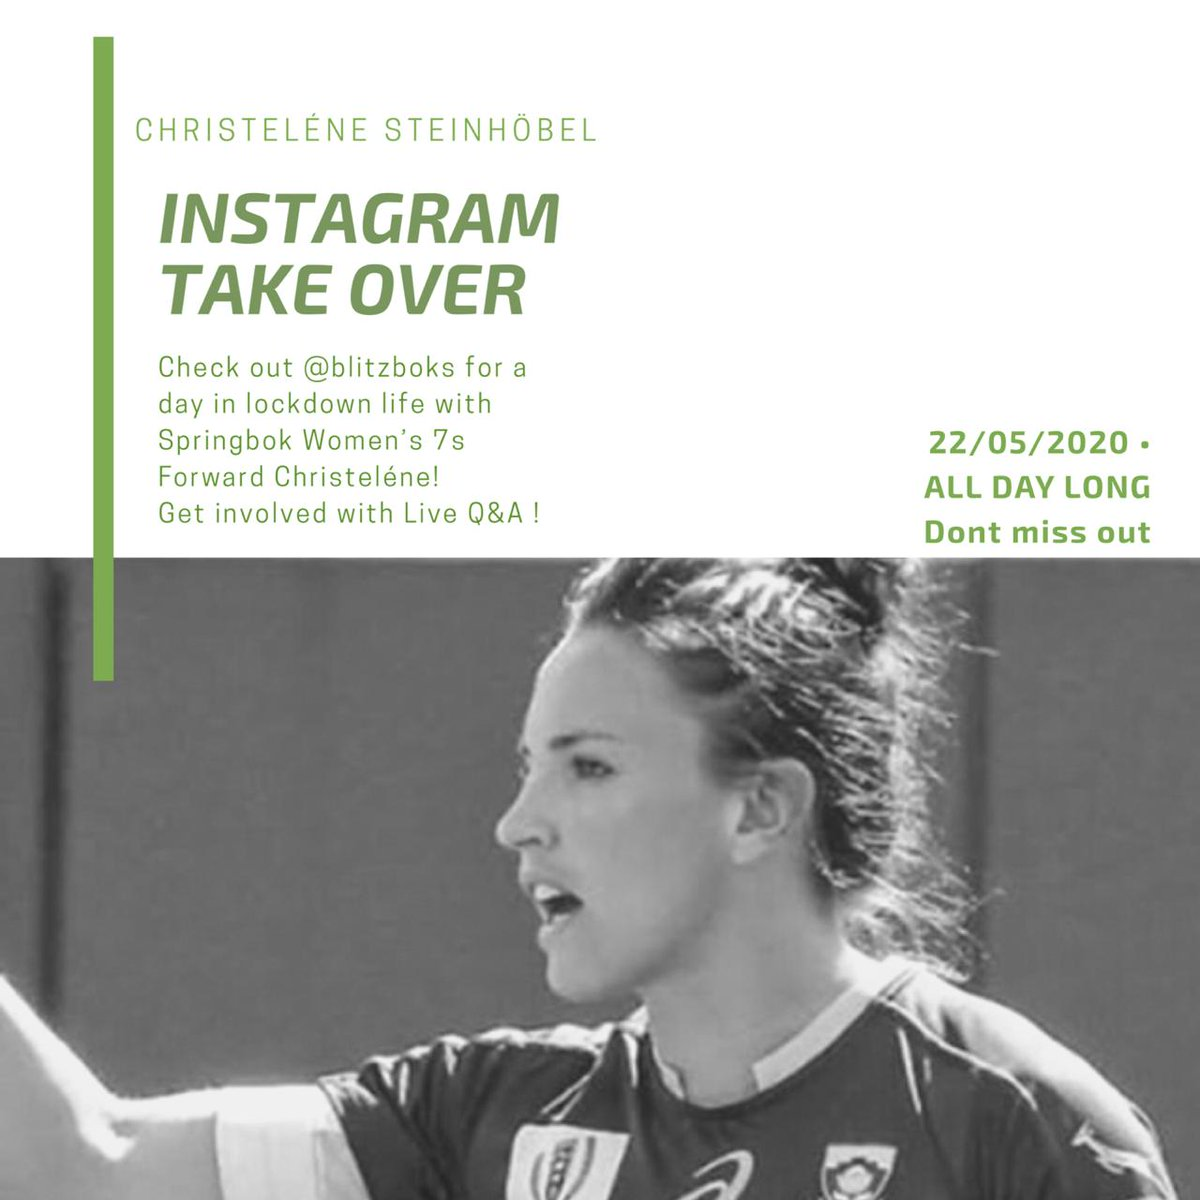 Suffering a bit due to Lockdownblues? Head over to IG where @CSteinhobel is taking over the @Blitzboks page on Friday! @ASICS_ZA @FNBSA @CastleFreeSA